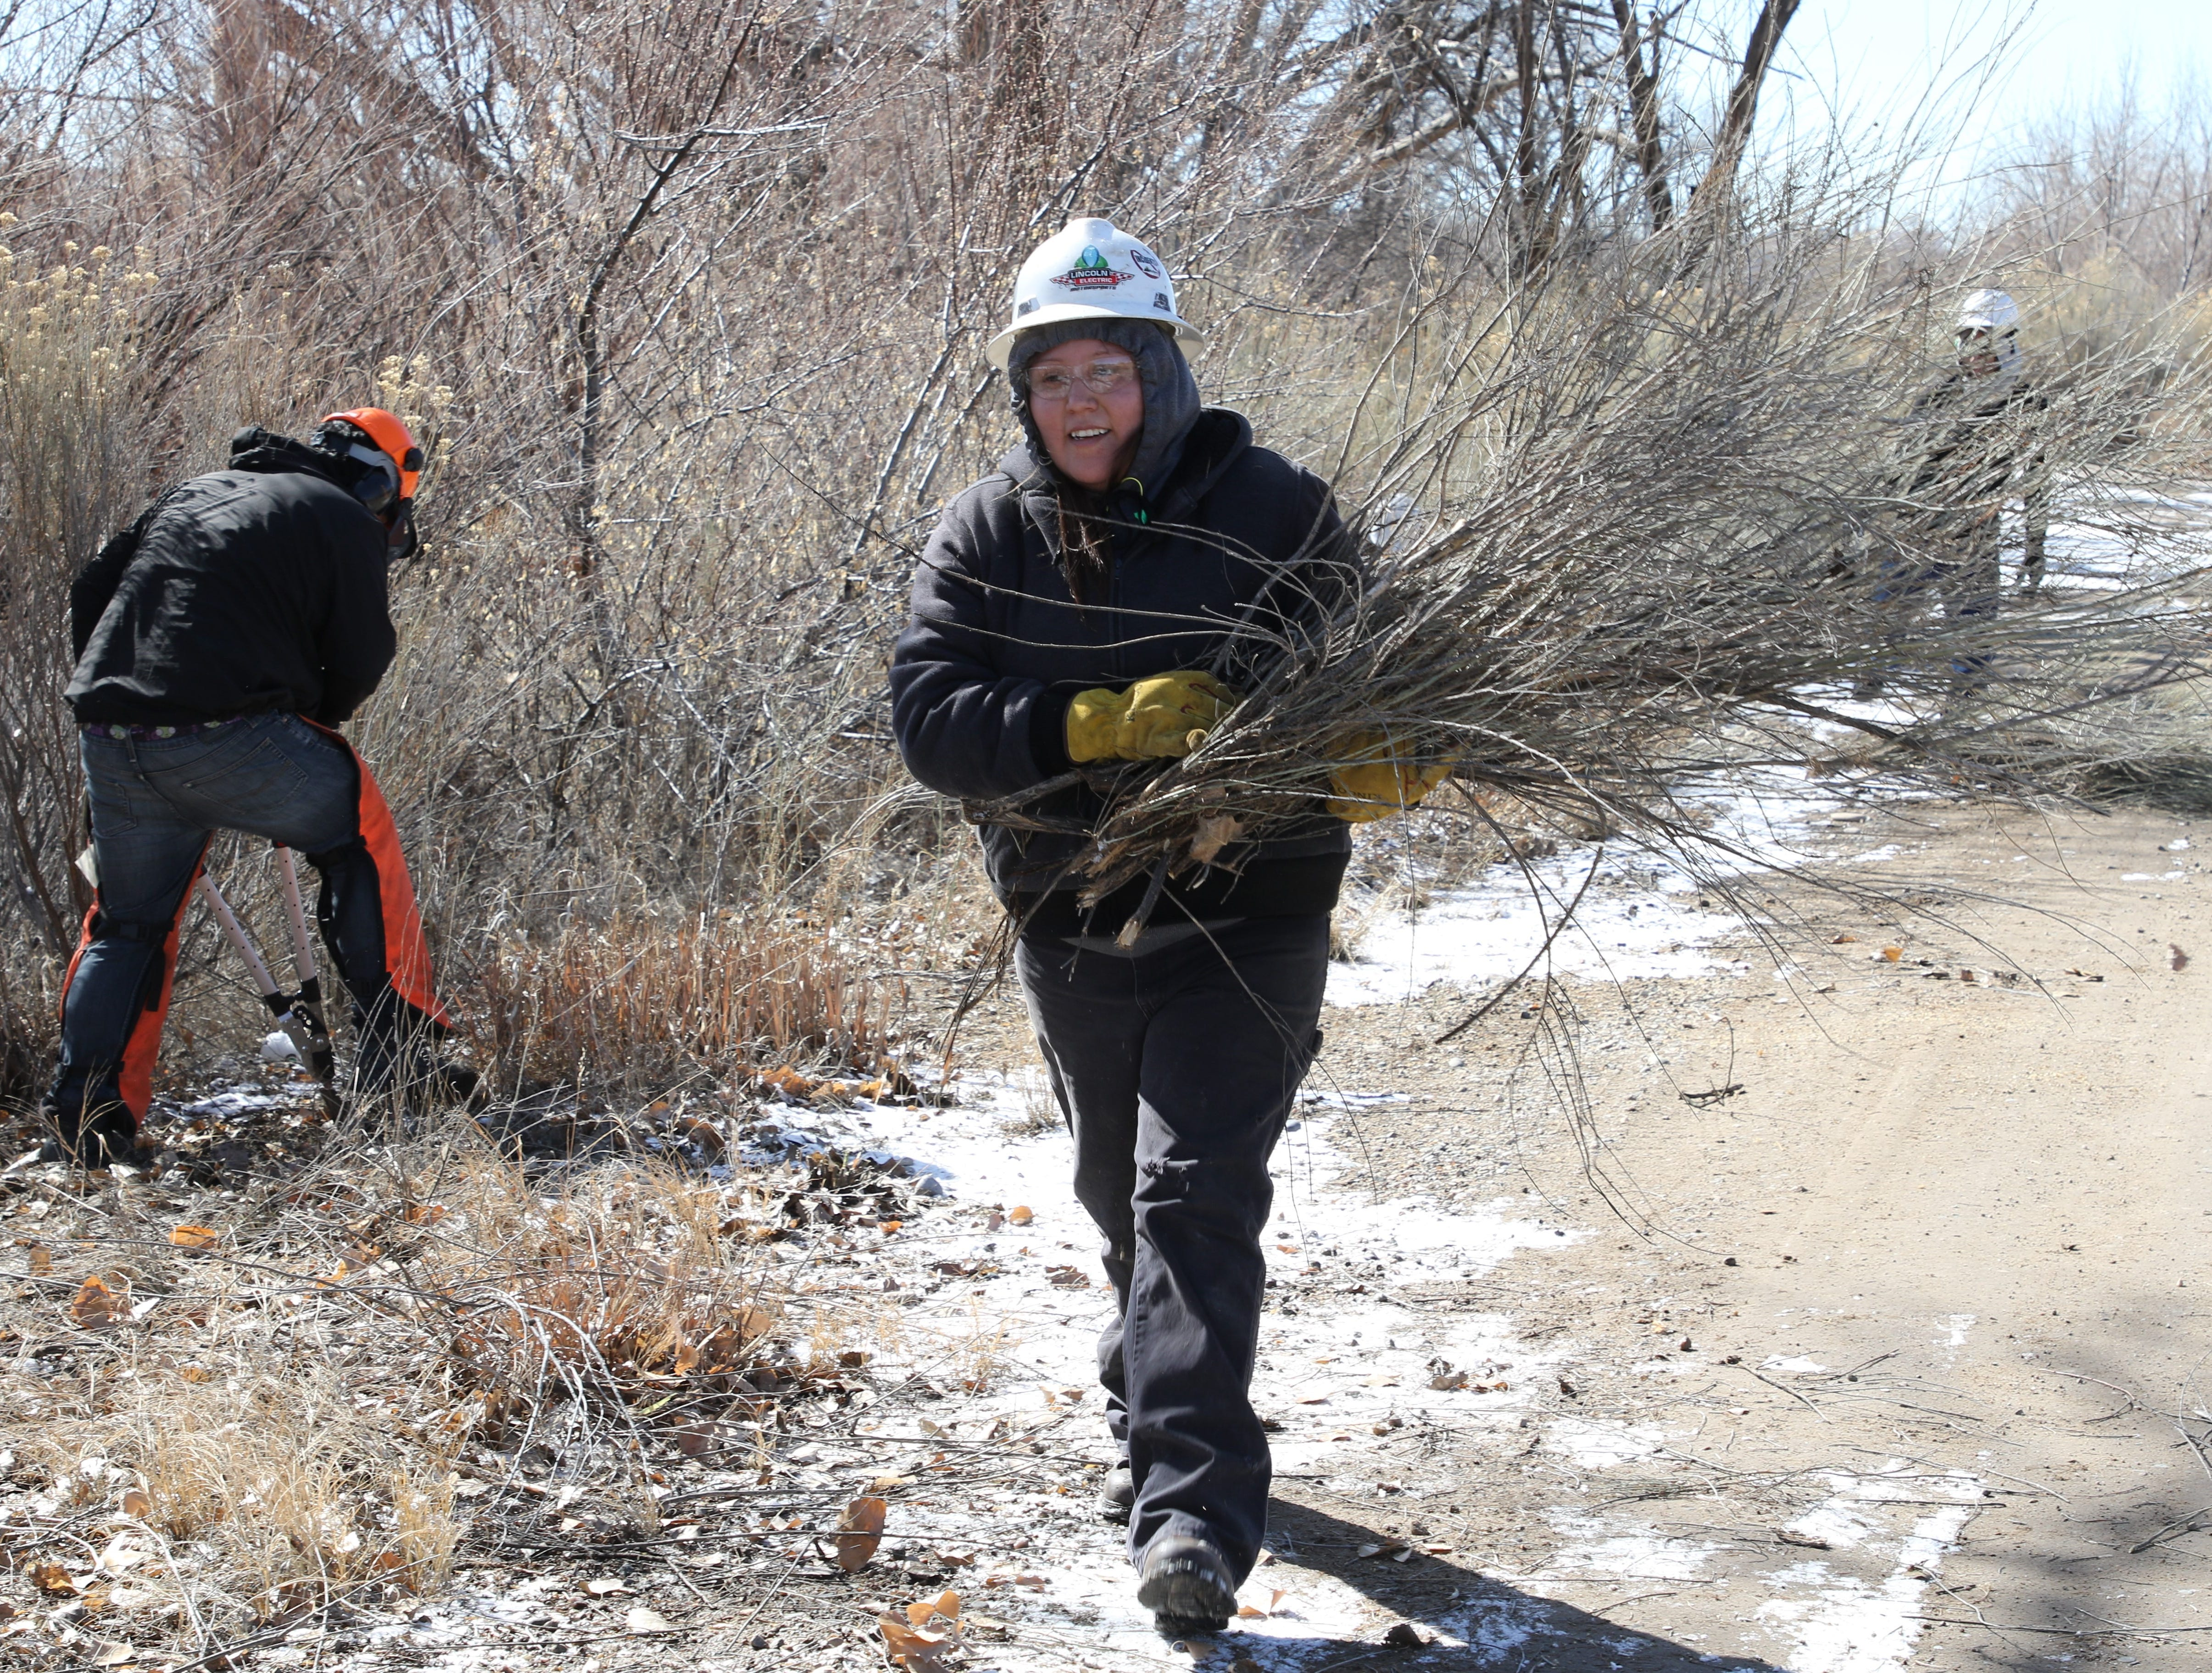 Youth Conservation Corps member Brandie Lee, center, carries debris from the group's work site north of the city of Bloomfield ponds on Thursday.